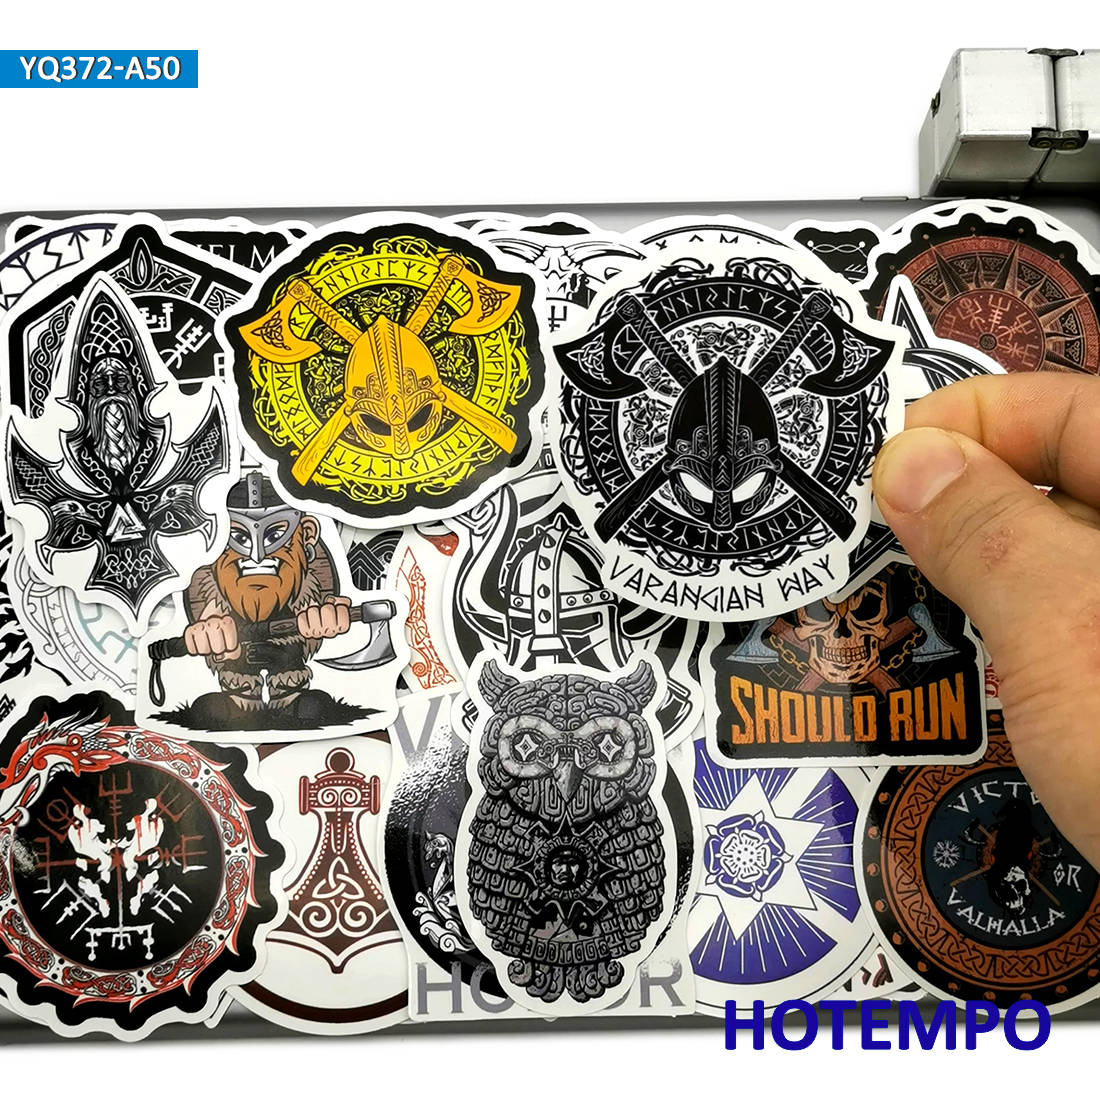 50pcs Mysterious Totem Symbol Rune Viking Pirates Style Stickers Toys For Mobile Phone Laptop Suitcase Skateboard Decal Stickers